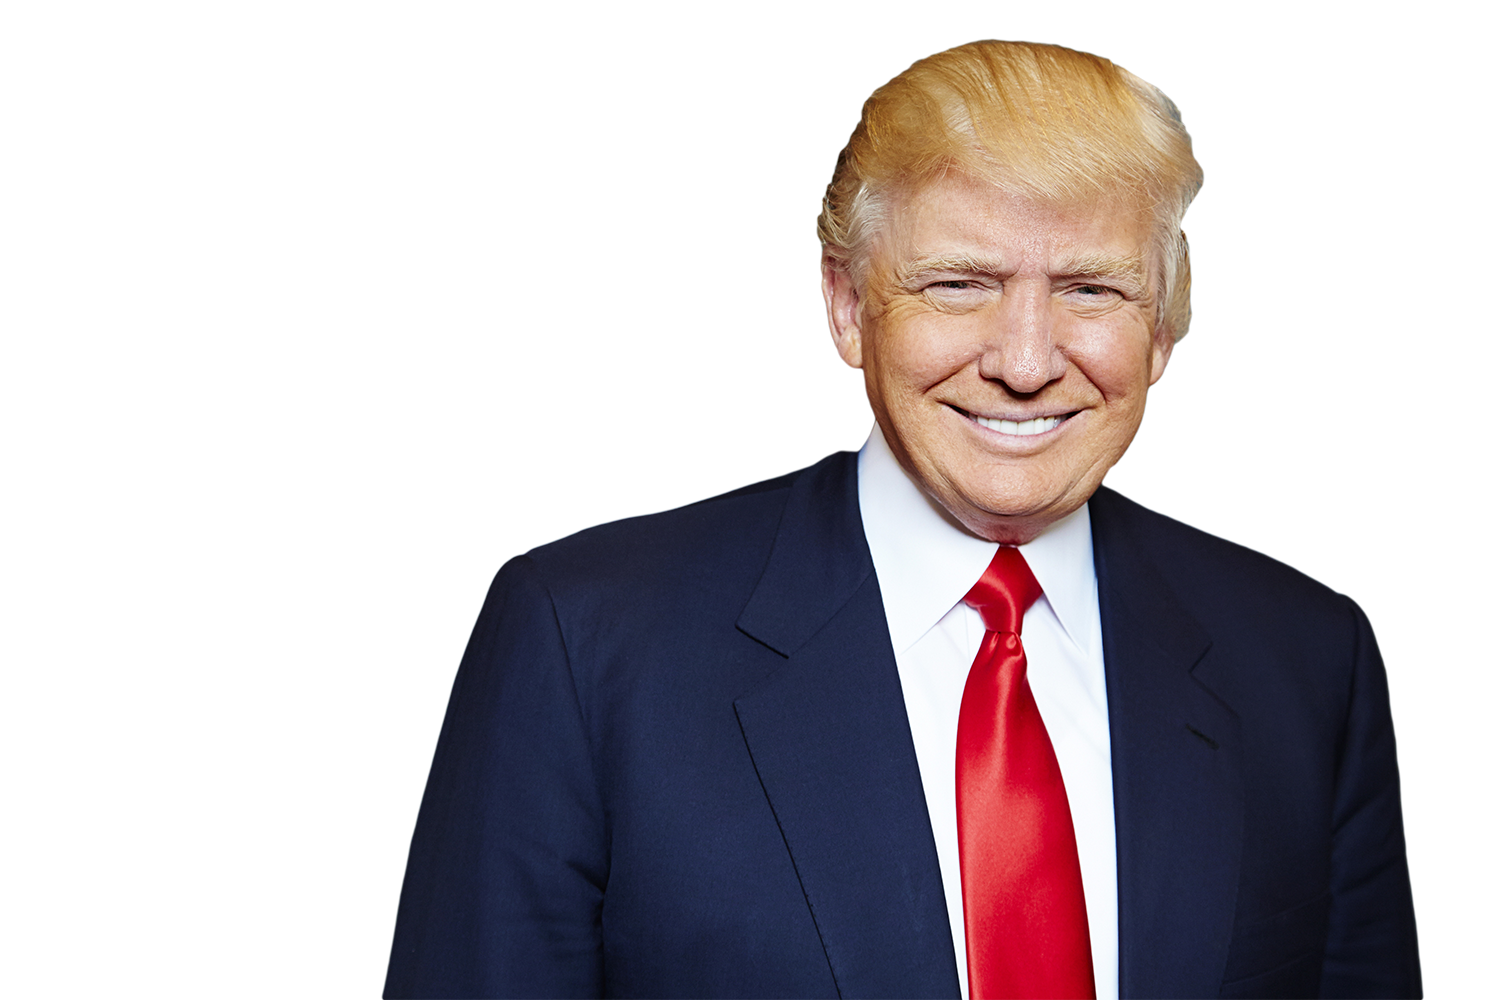 donald trump png images free download